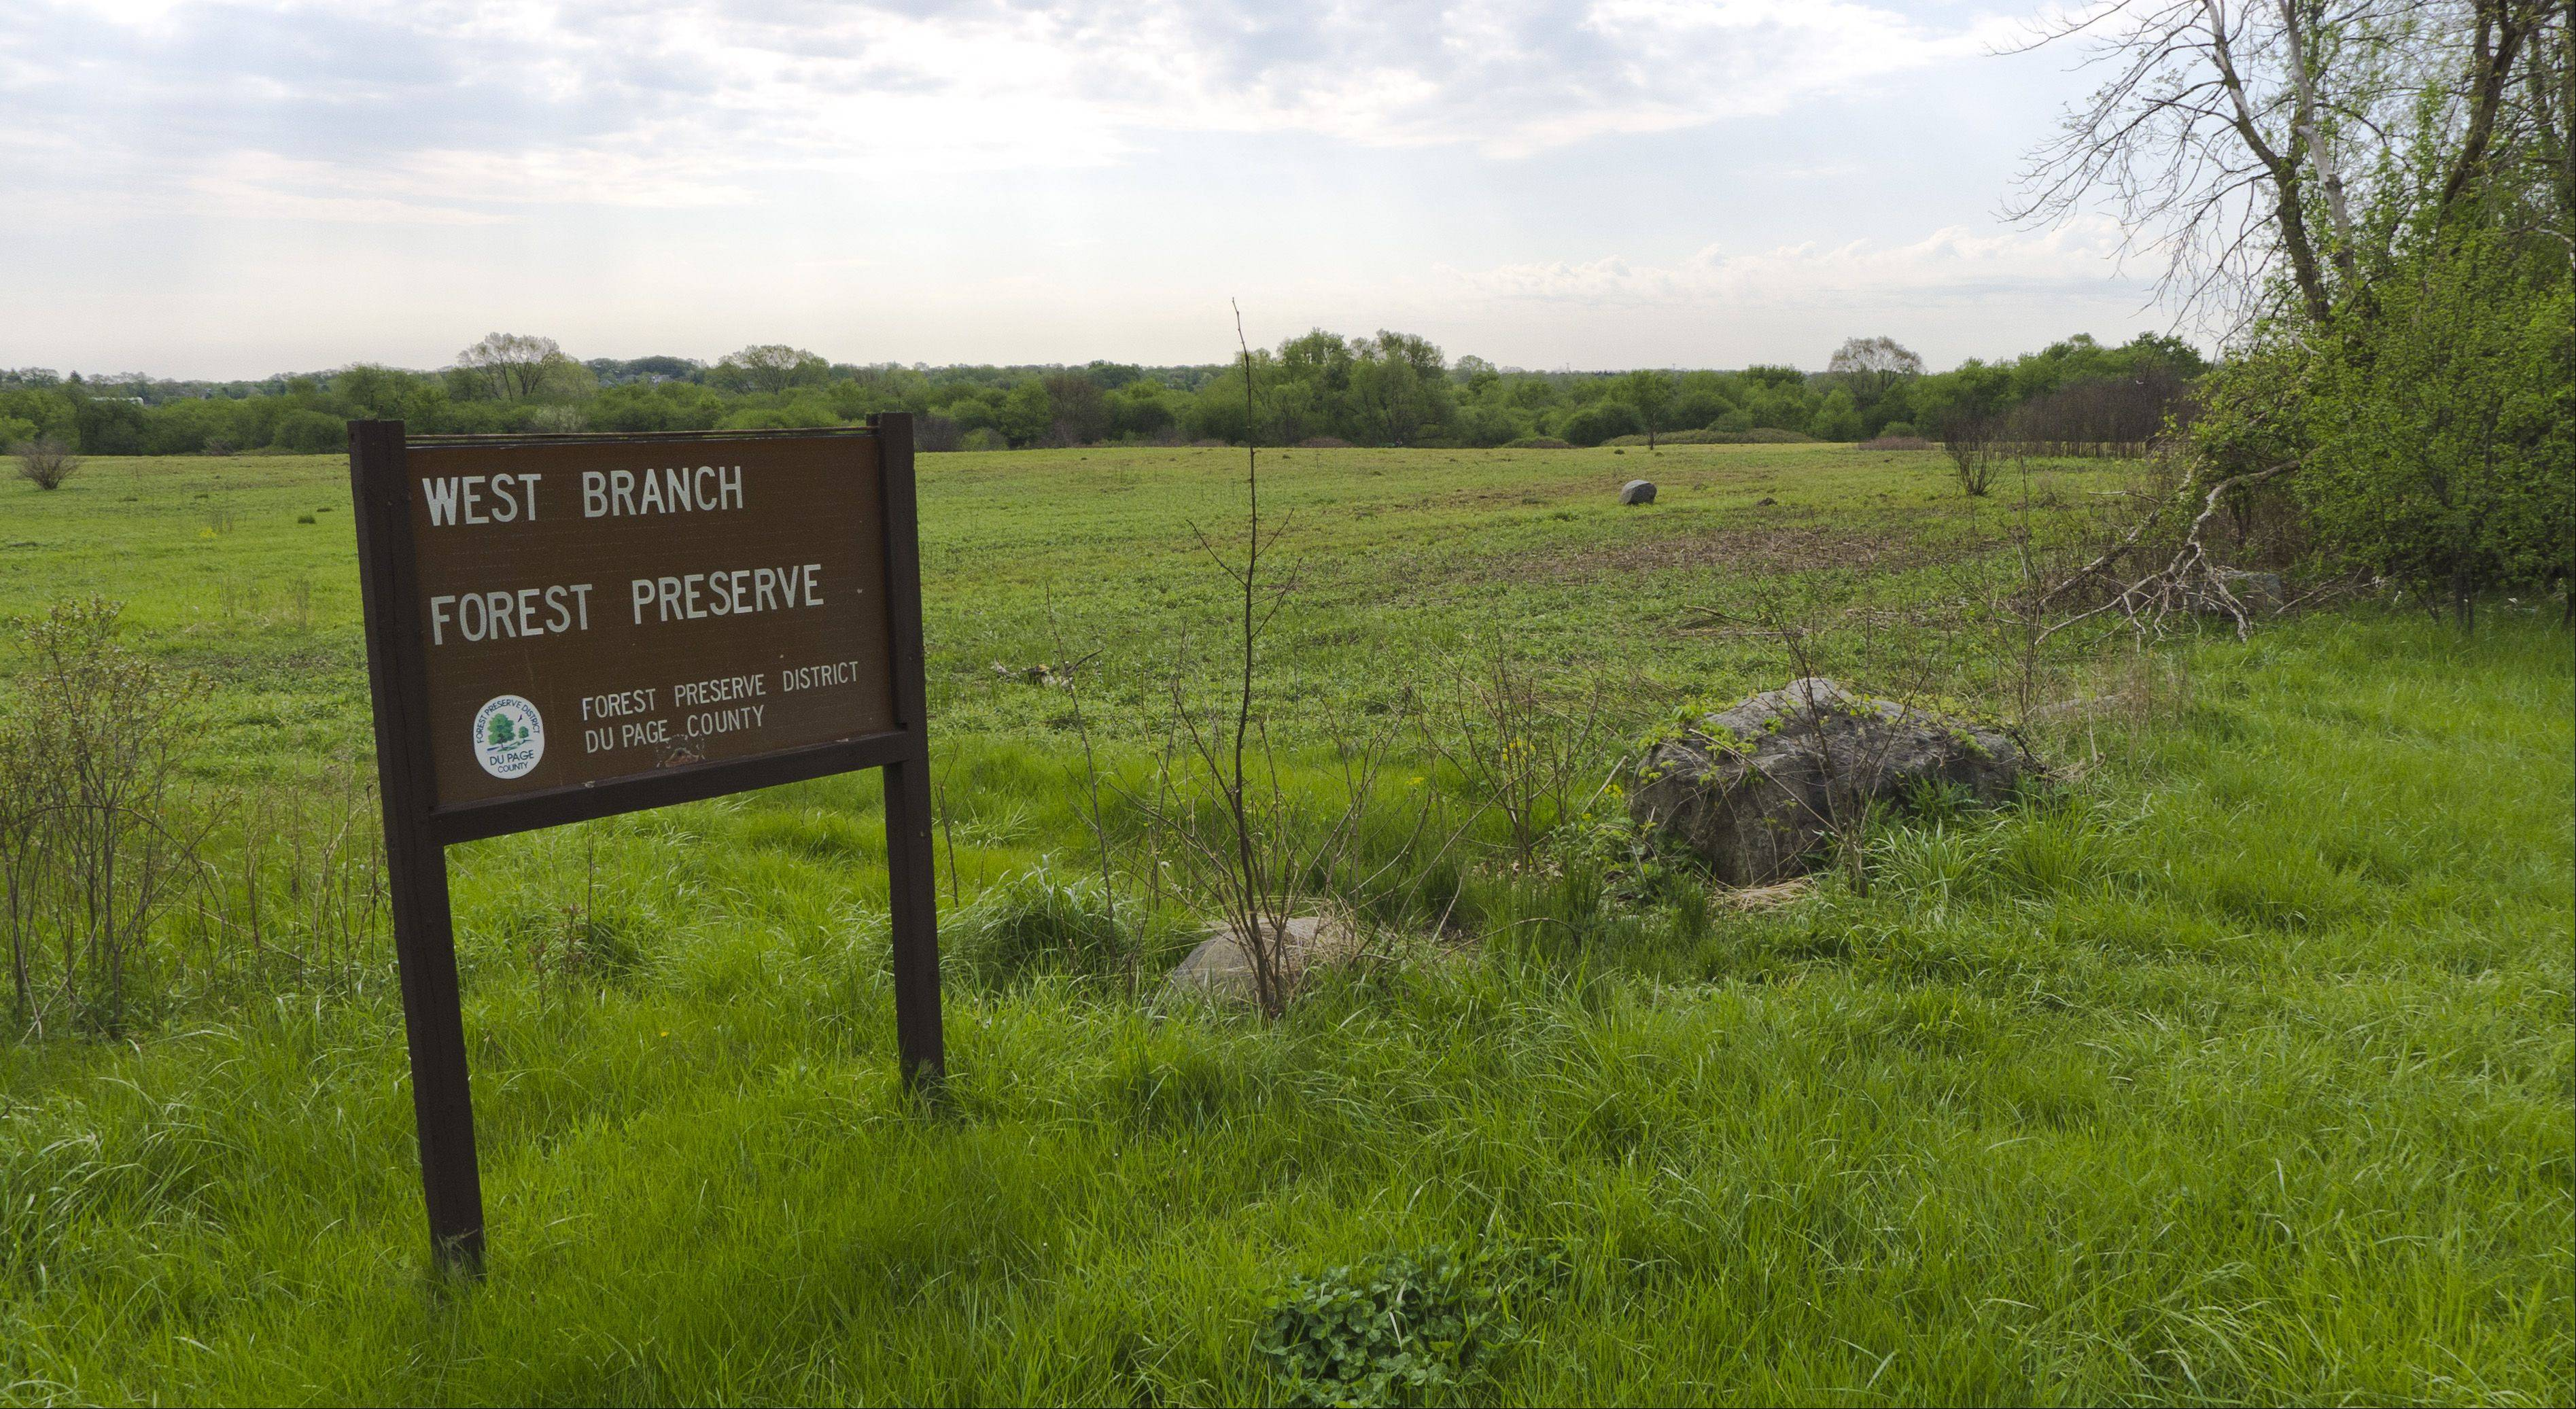 Work is expected to begin later this month on a multiyear project to add more than 95 acres of wetlands to the West Branch Forest Preserve near Bartlett.